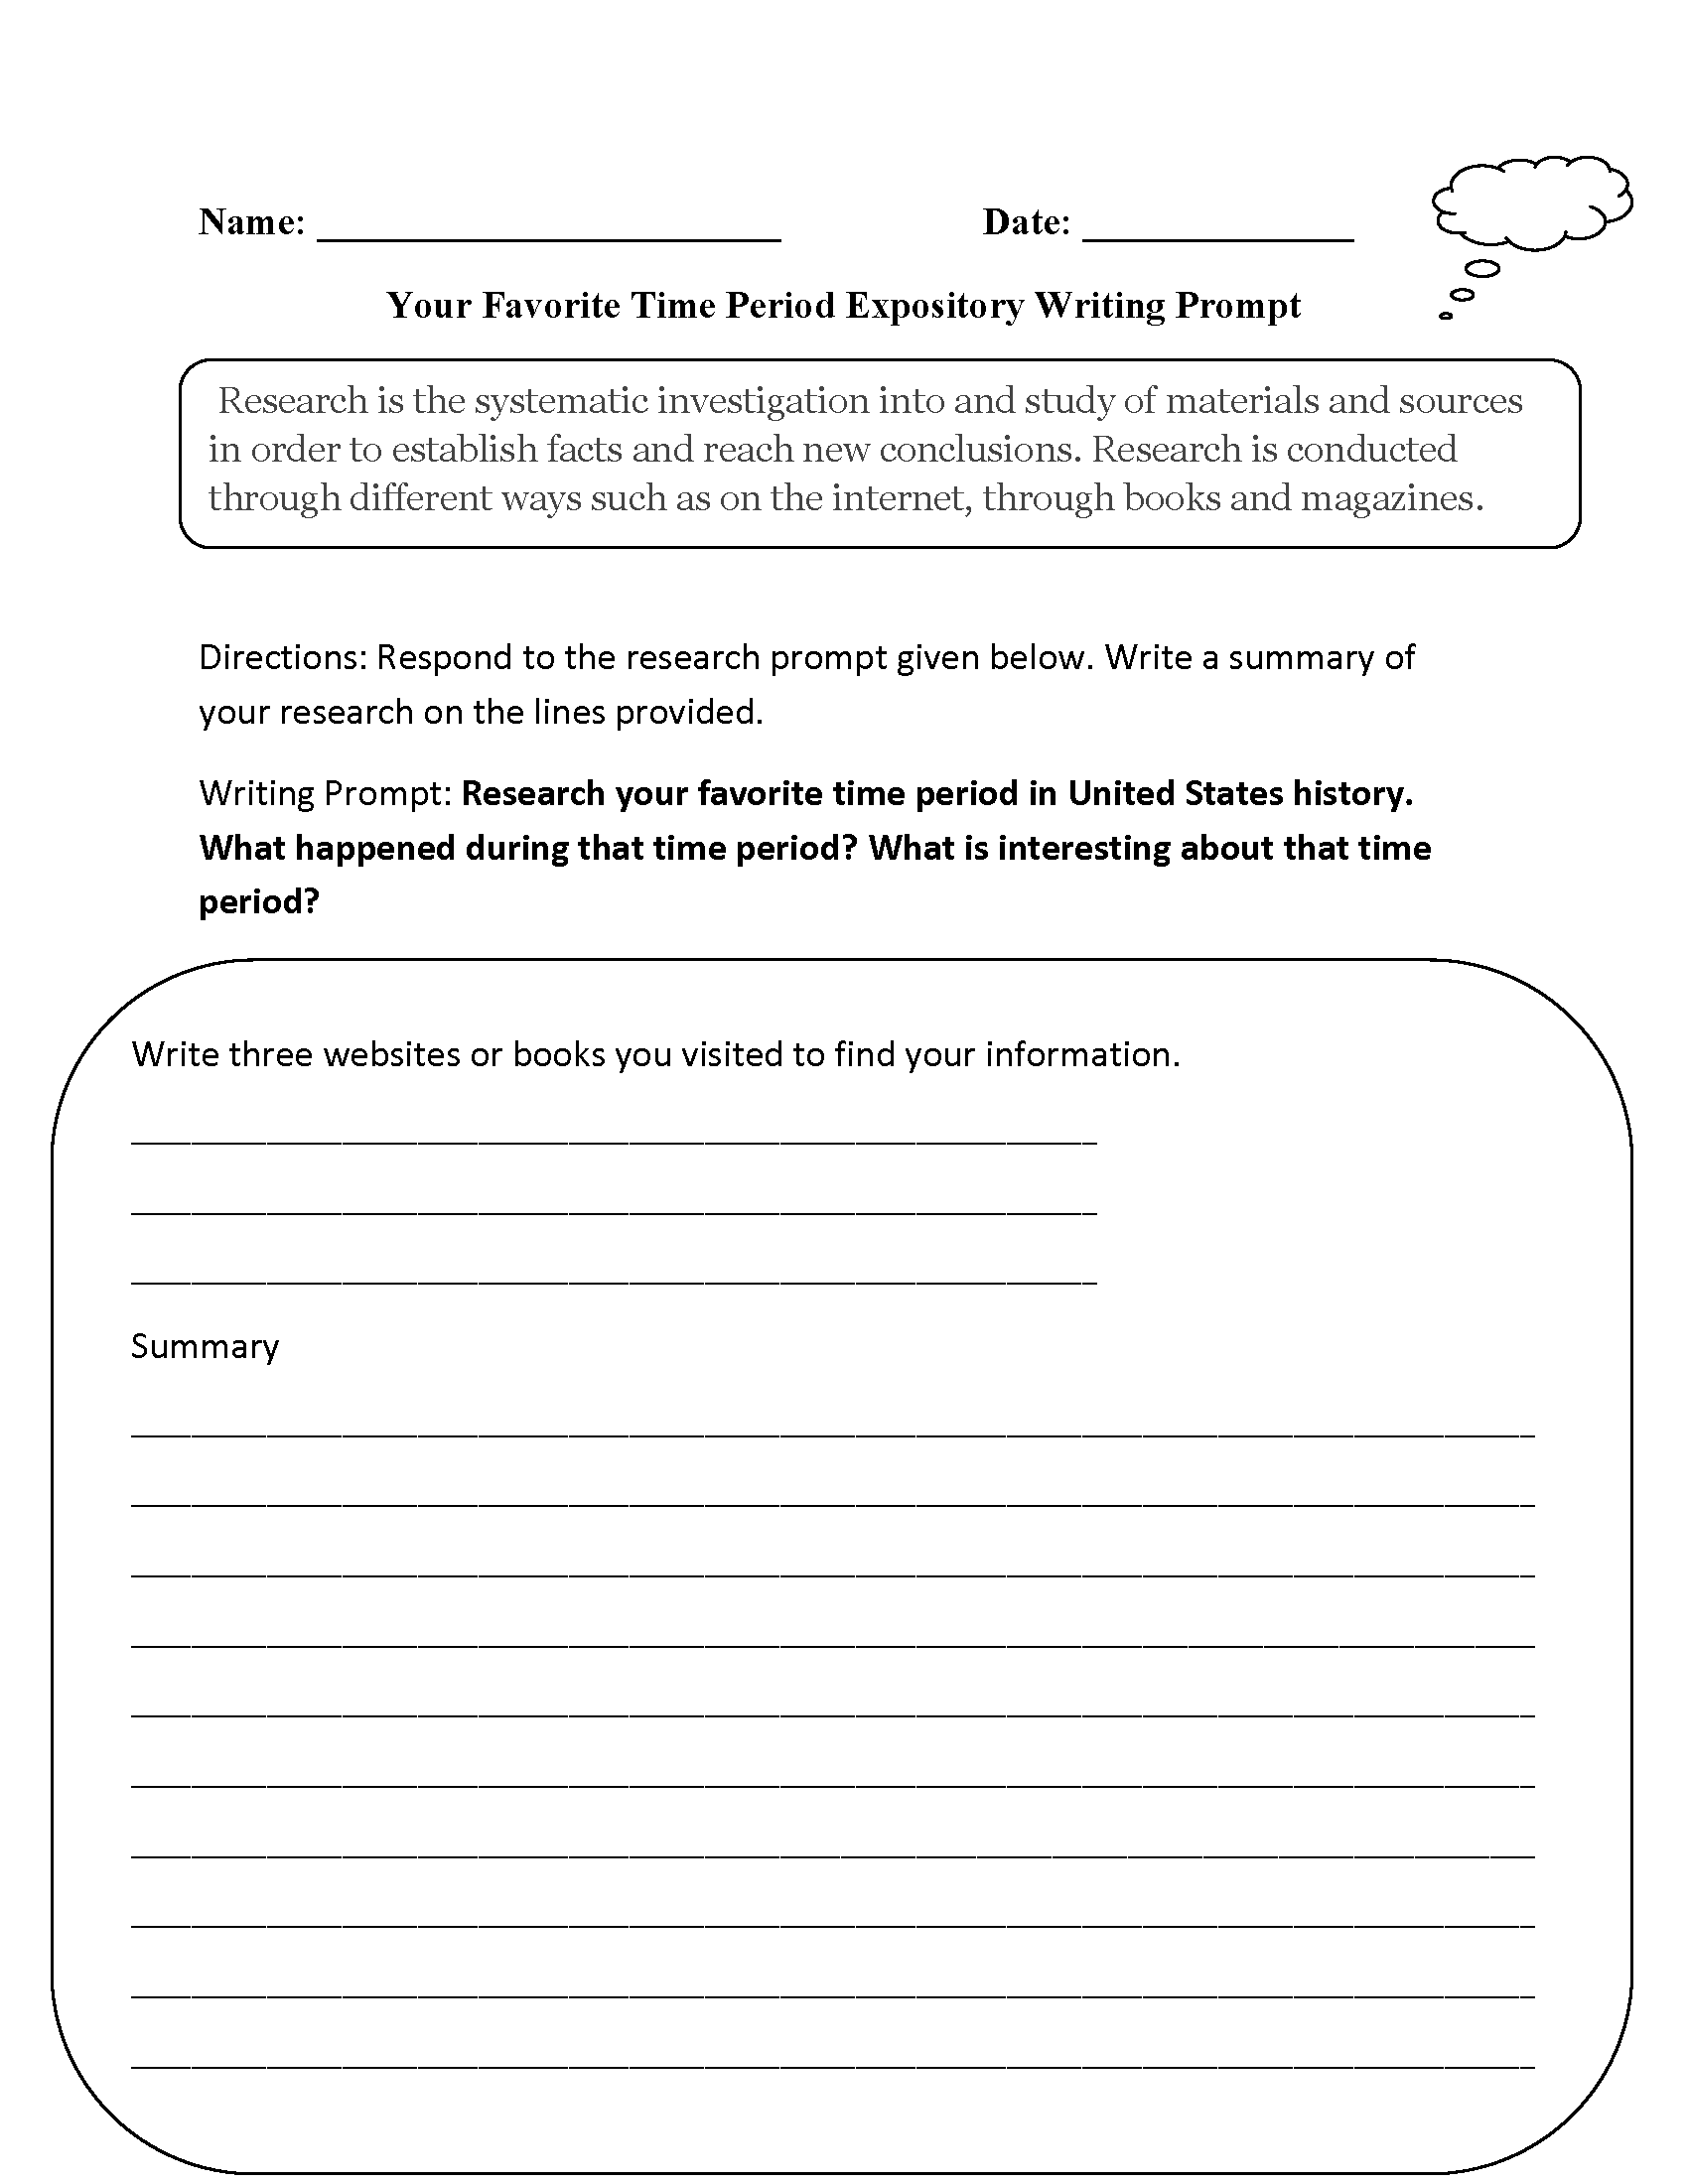 picture prompt essay worksheet It includes descriptive, narrative, creative, persuasive and recount writing worksheets there are various topics for all age groups starting from first grade to sixth grade each worksheet includes a picture prompt and two sheets of lined writing paper.